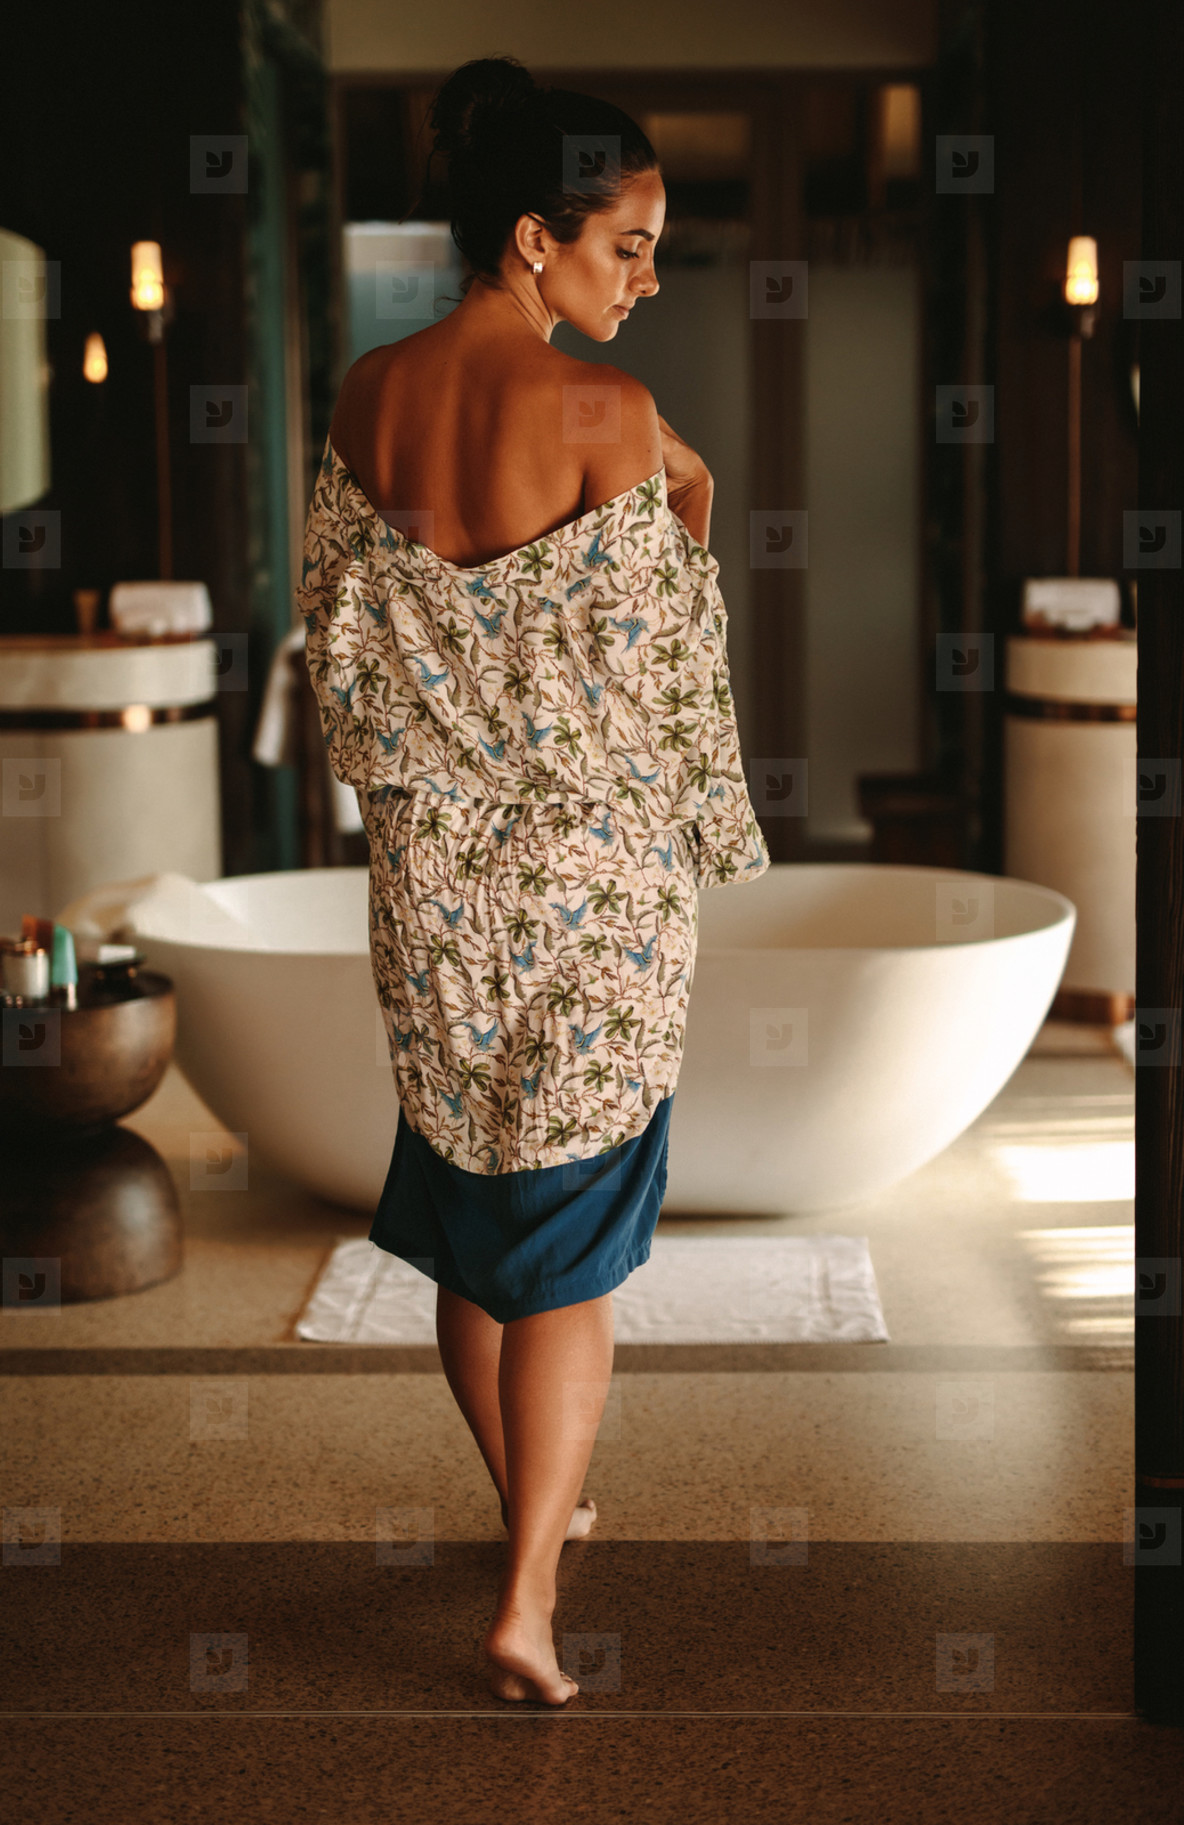 Woman getting ready for a luxurious bathing experience